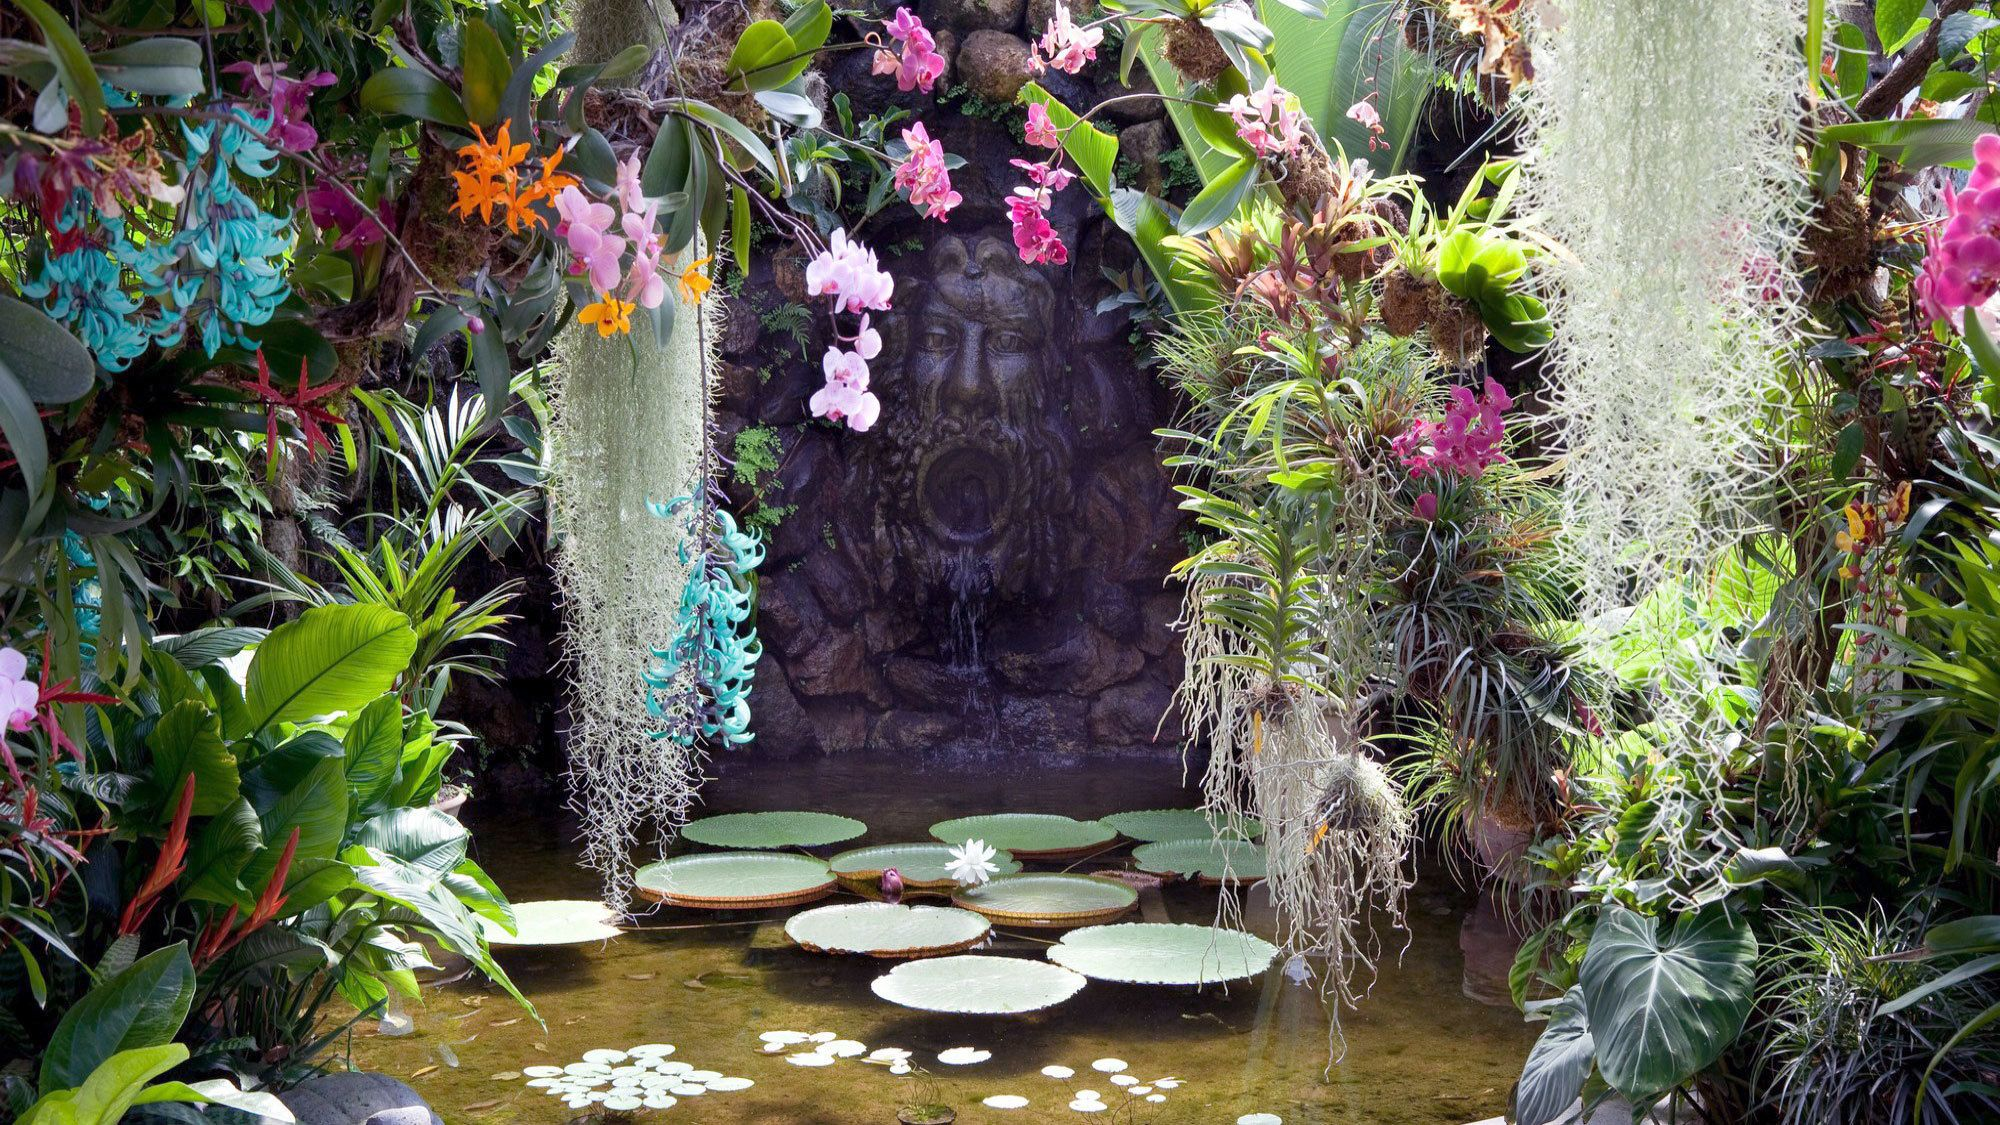 Brightly colored flowers surround a pool and fountain at the Mortella Gardens on Ischia